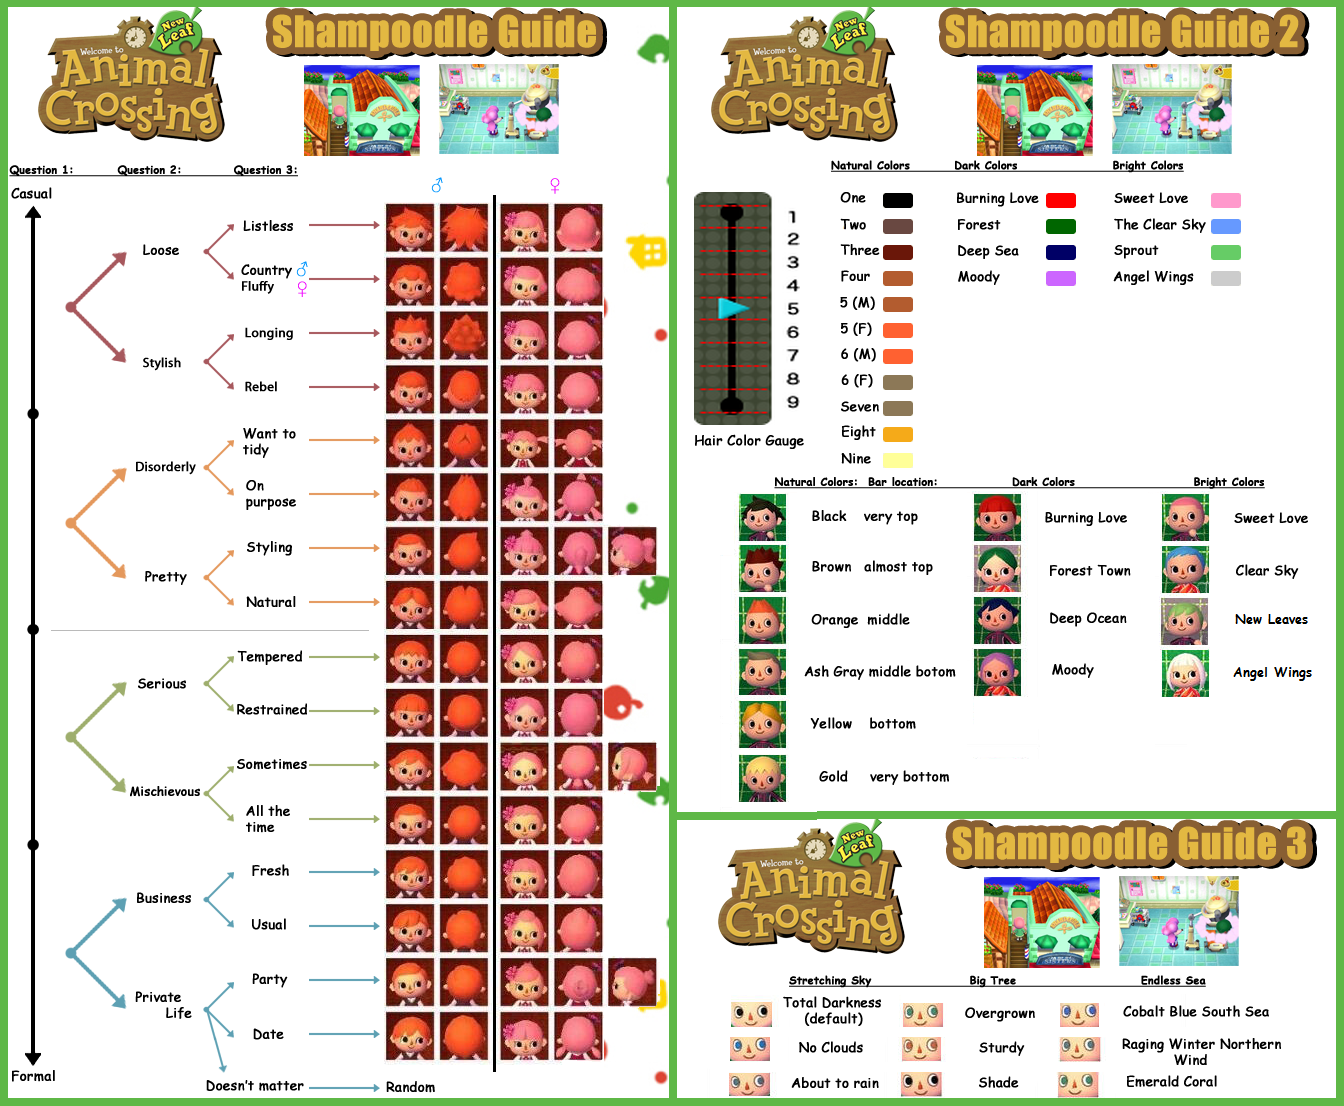 Guide to Shampoodle Animal Crossing New Leaf